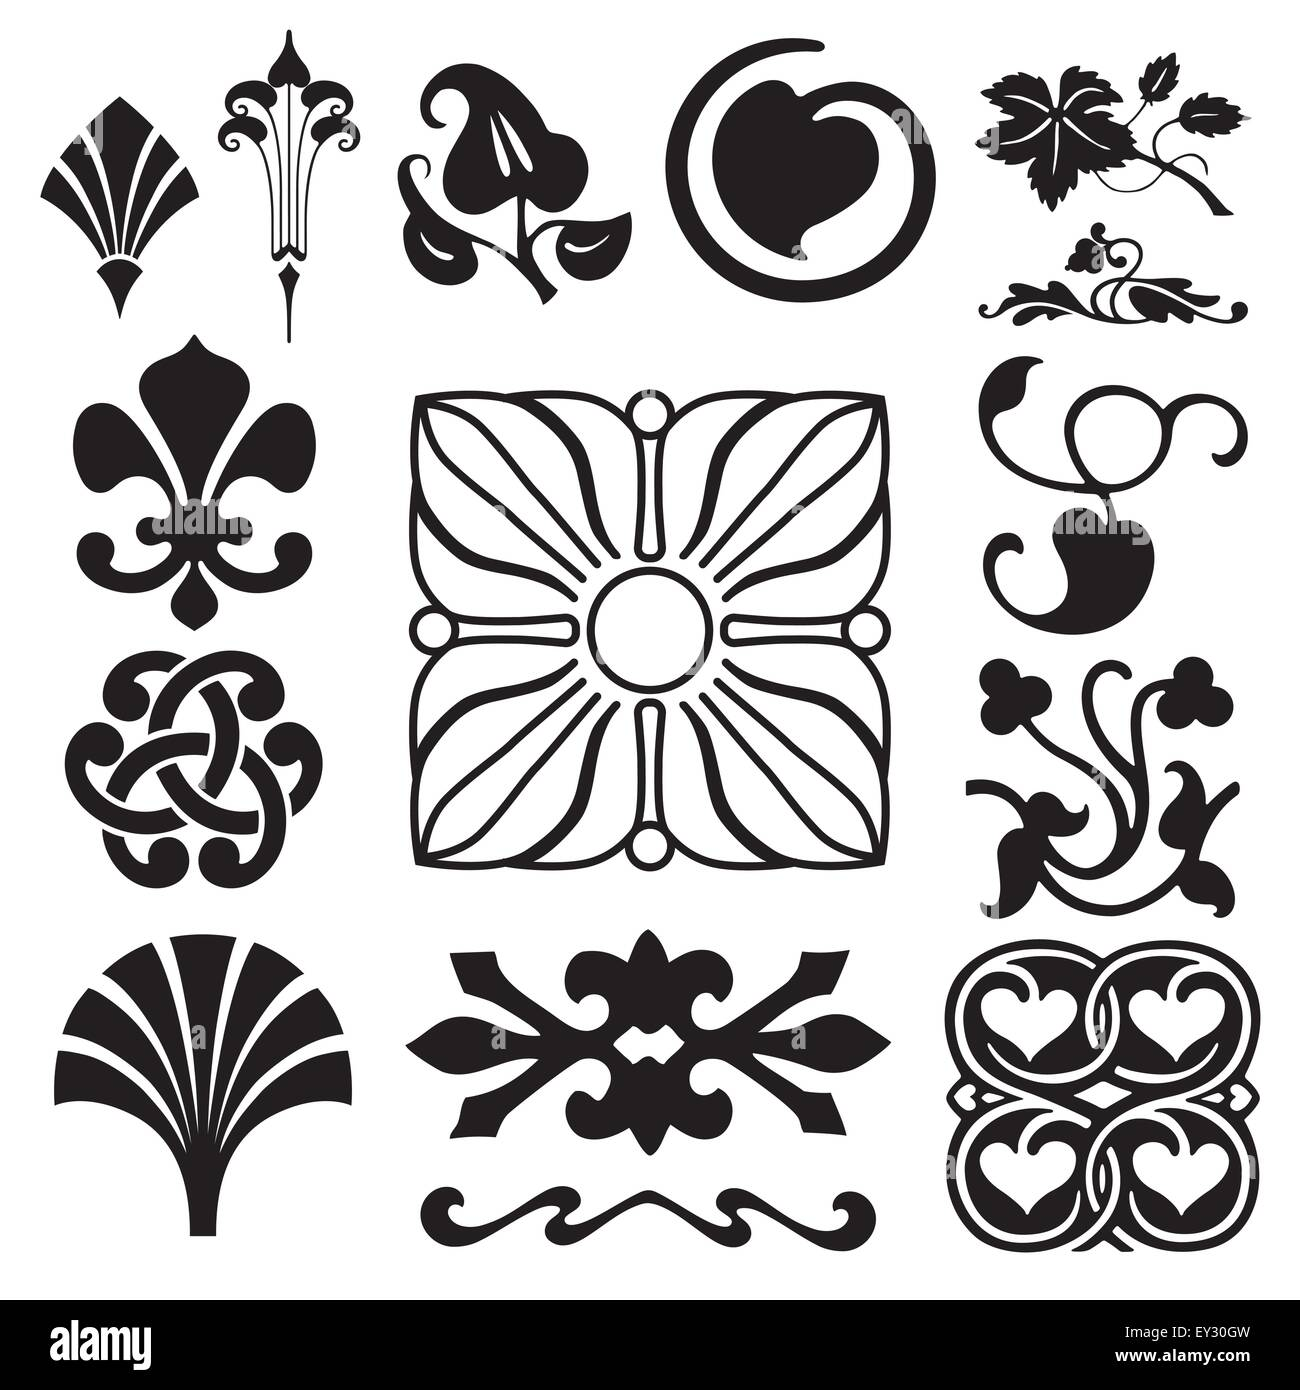 Retro floral ornaments collection - Stock Image